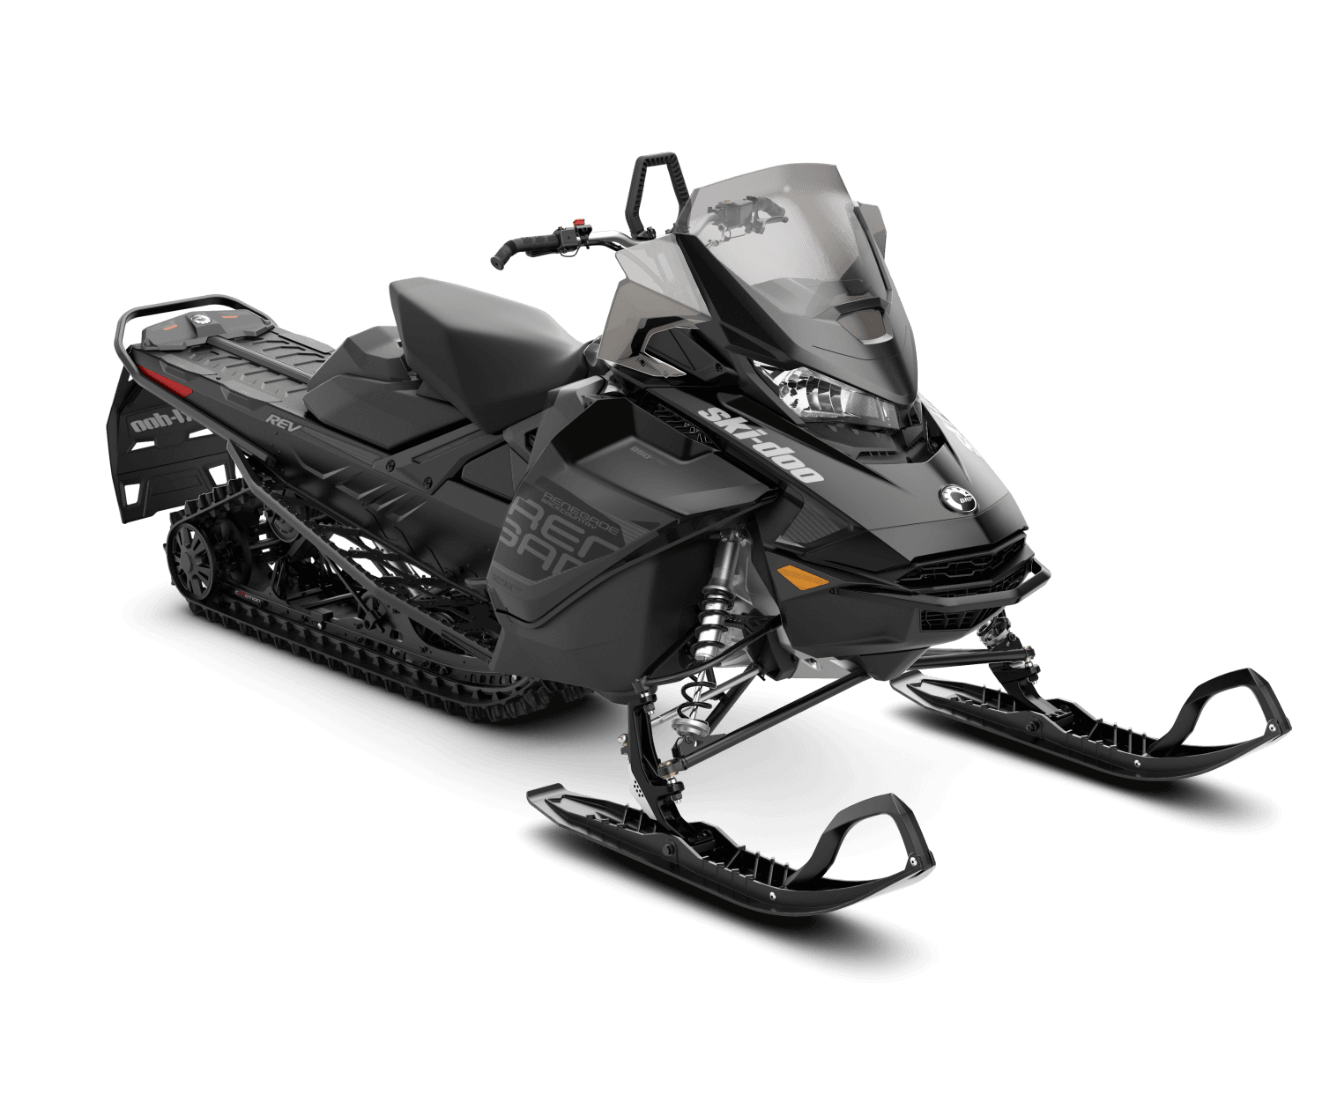 Renegade Back Country 600 E-TECH 2018